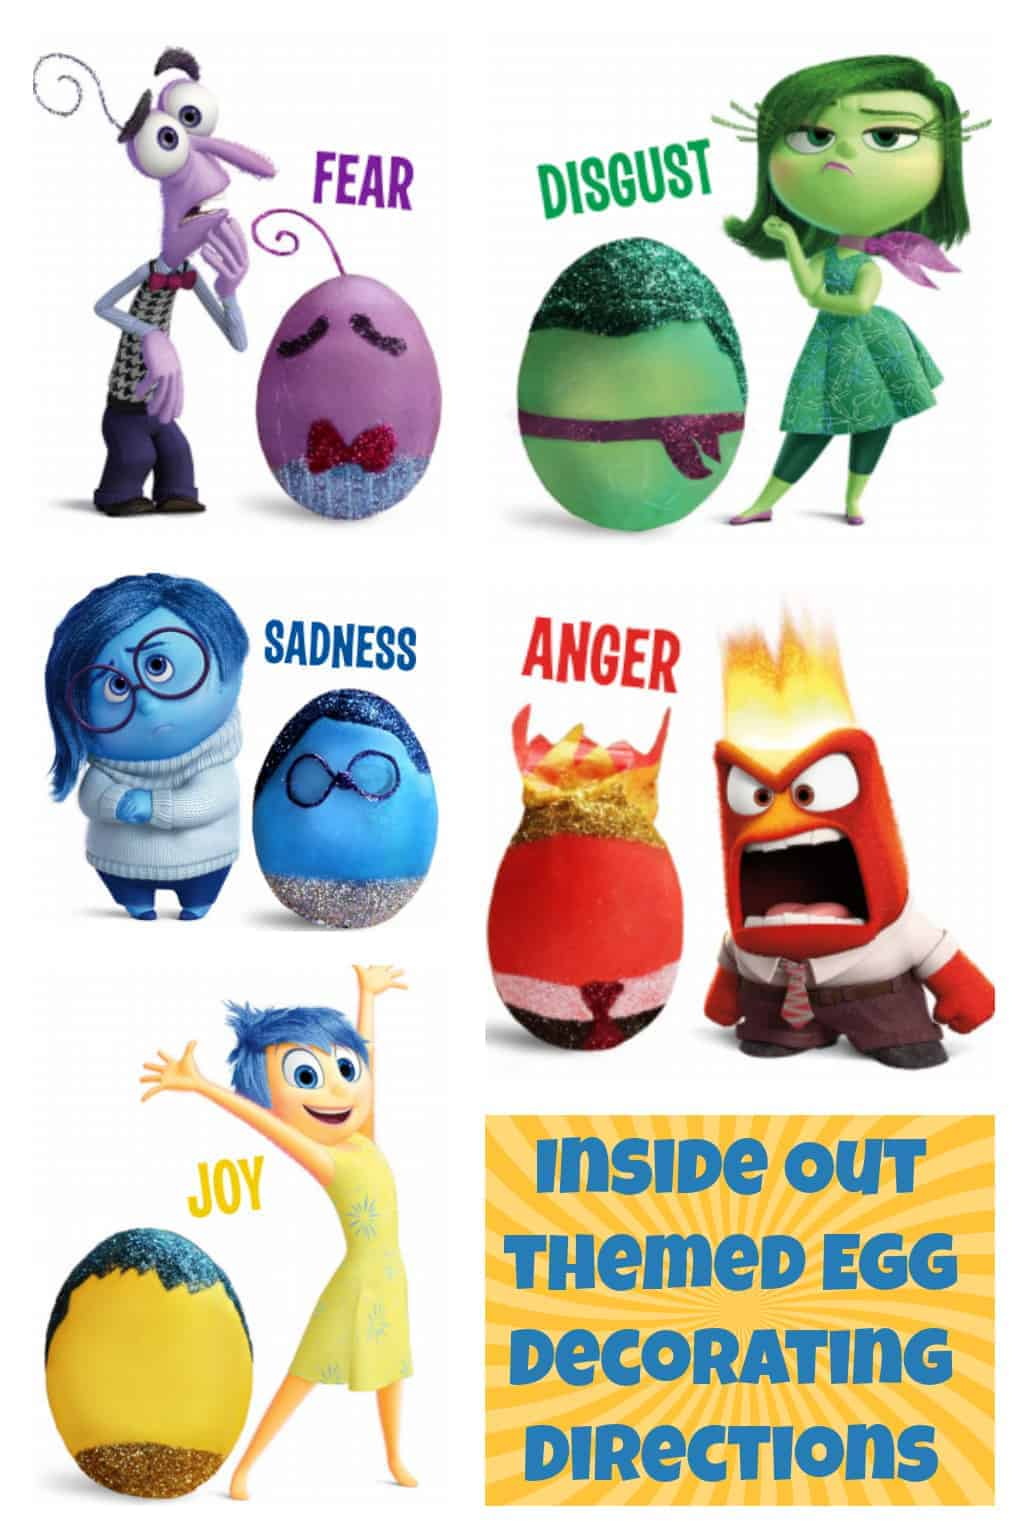 Inside Out Themed Egg Decorating Directions